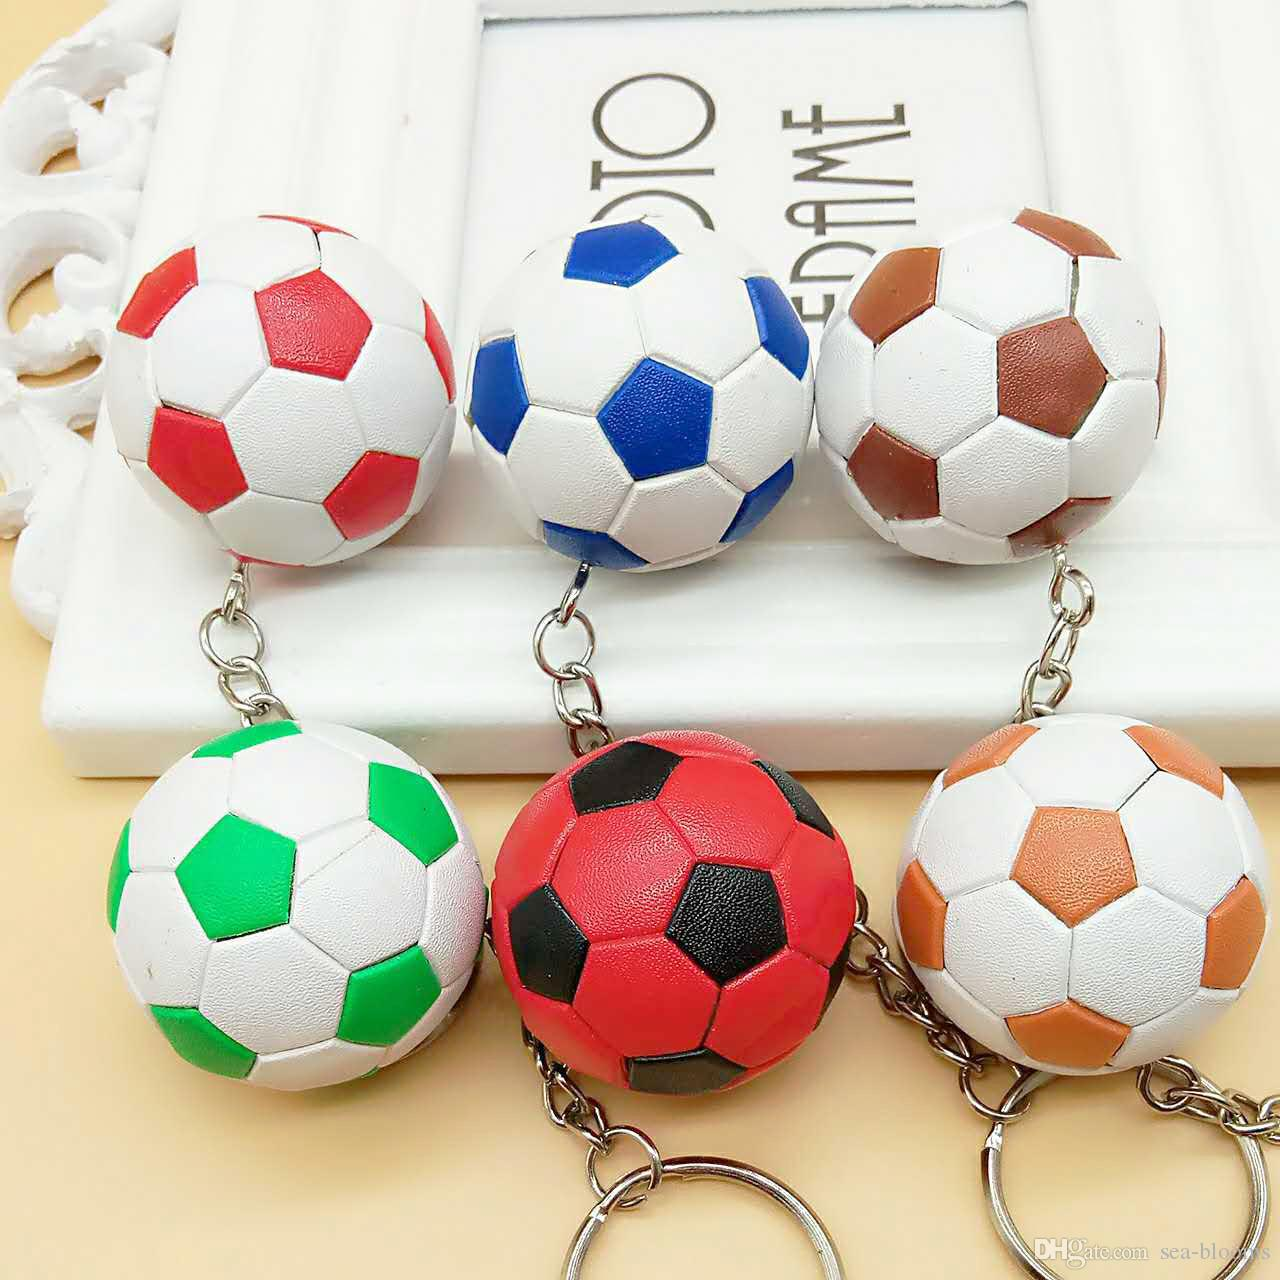 f6715cb1b 2019 2018 Football Keychain Pendant Bag Accessories Football World Cup Fans  Small Gifts Sports Events Commemorative Gifts G627R From Sea Blooms